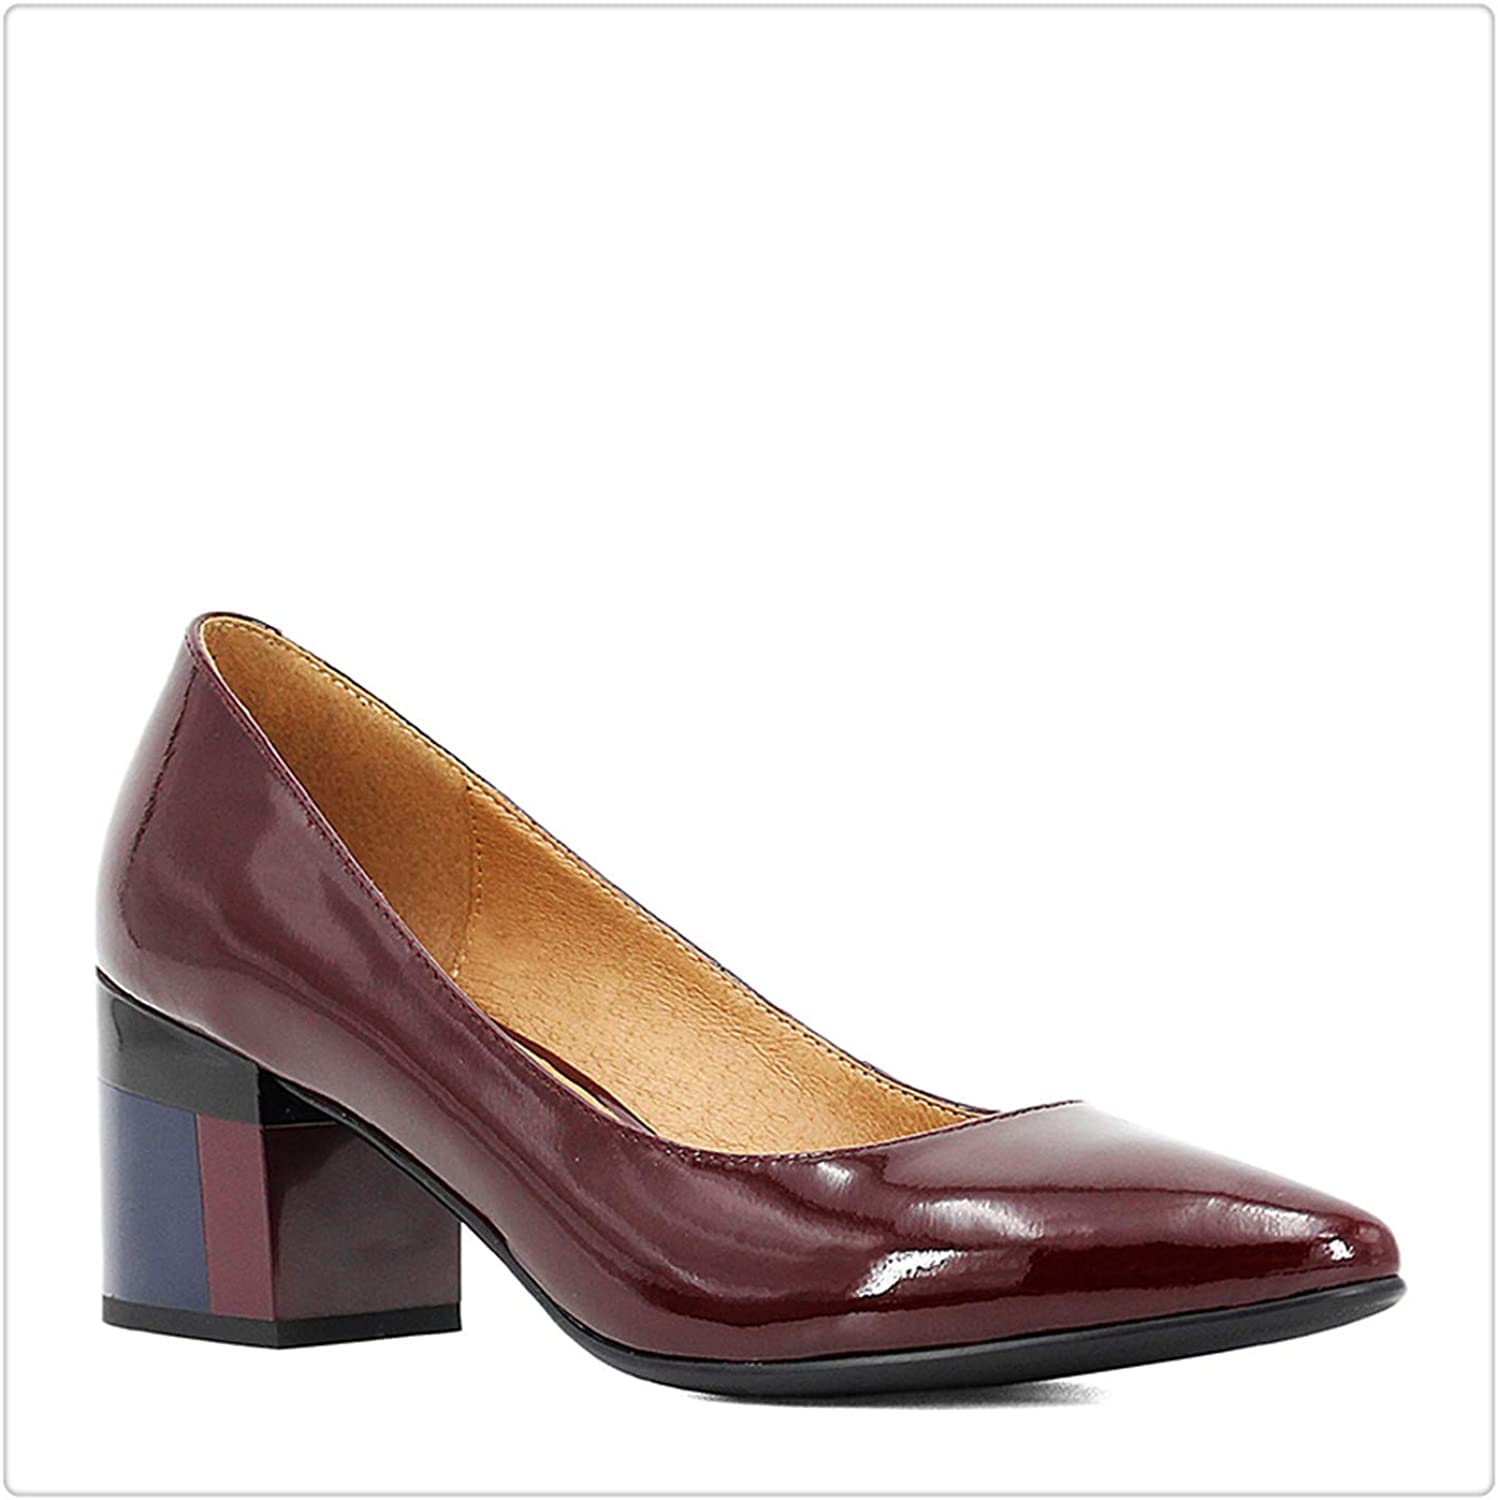 HANGGE& Thick Heel Ladies Pumps Patent Leather Pointed Toe colorful Square Heels Party